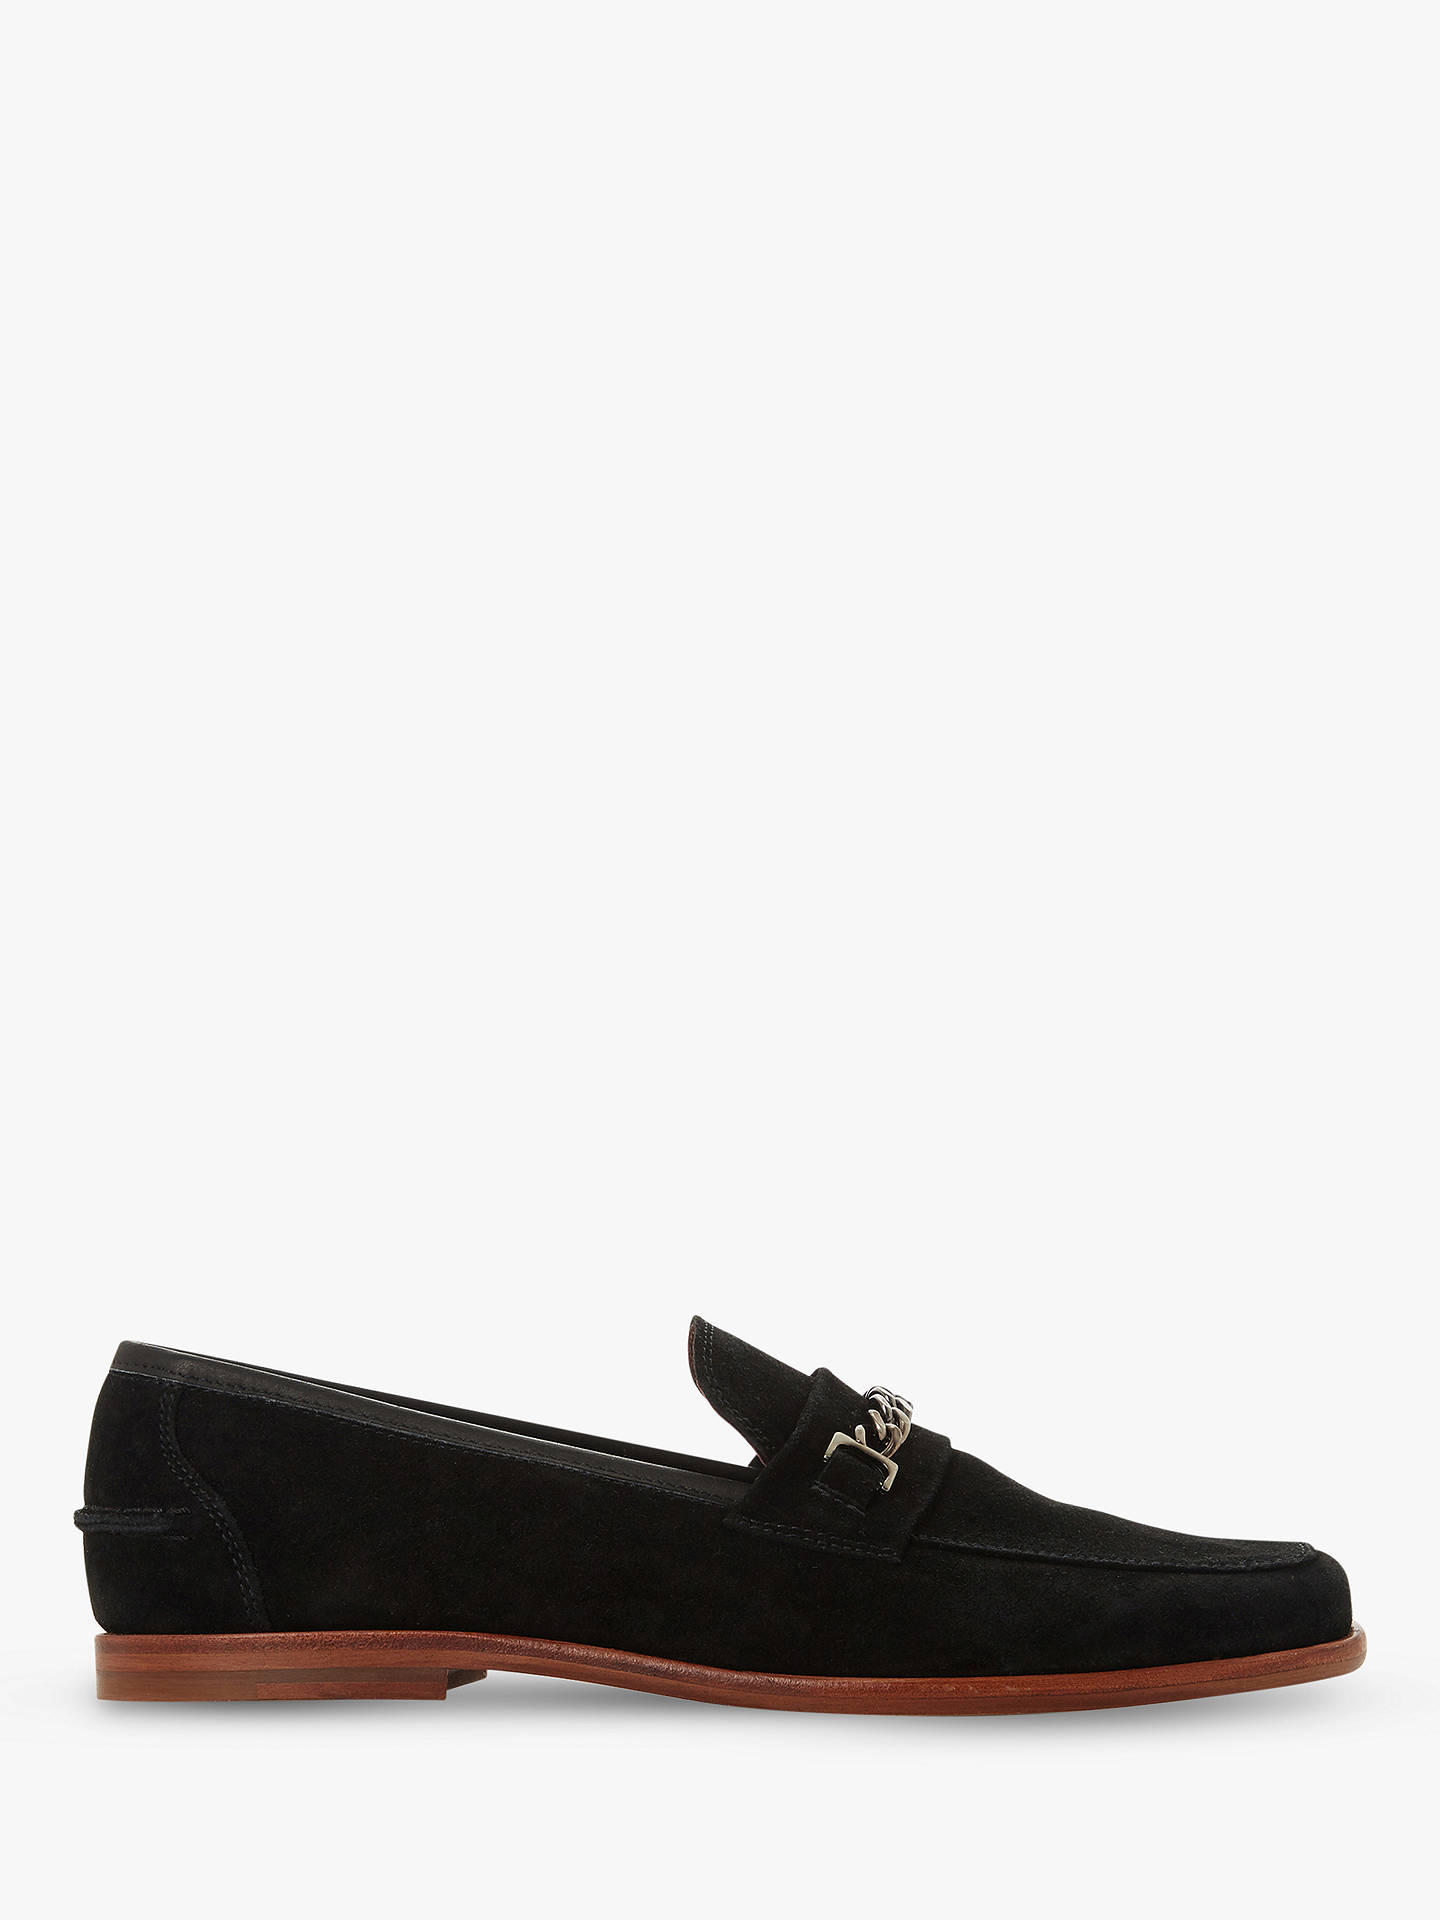 5b78313d376 Bertie Surbiton Suede Square Toe Loafer at John Lewis   Partners